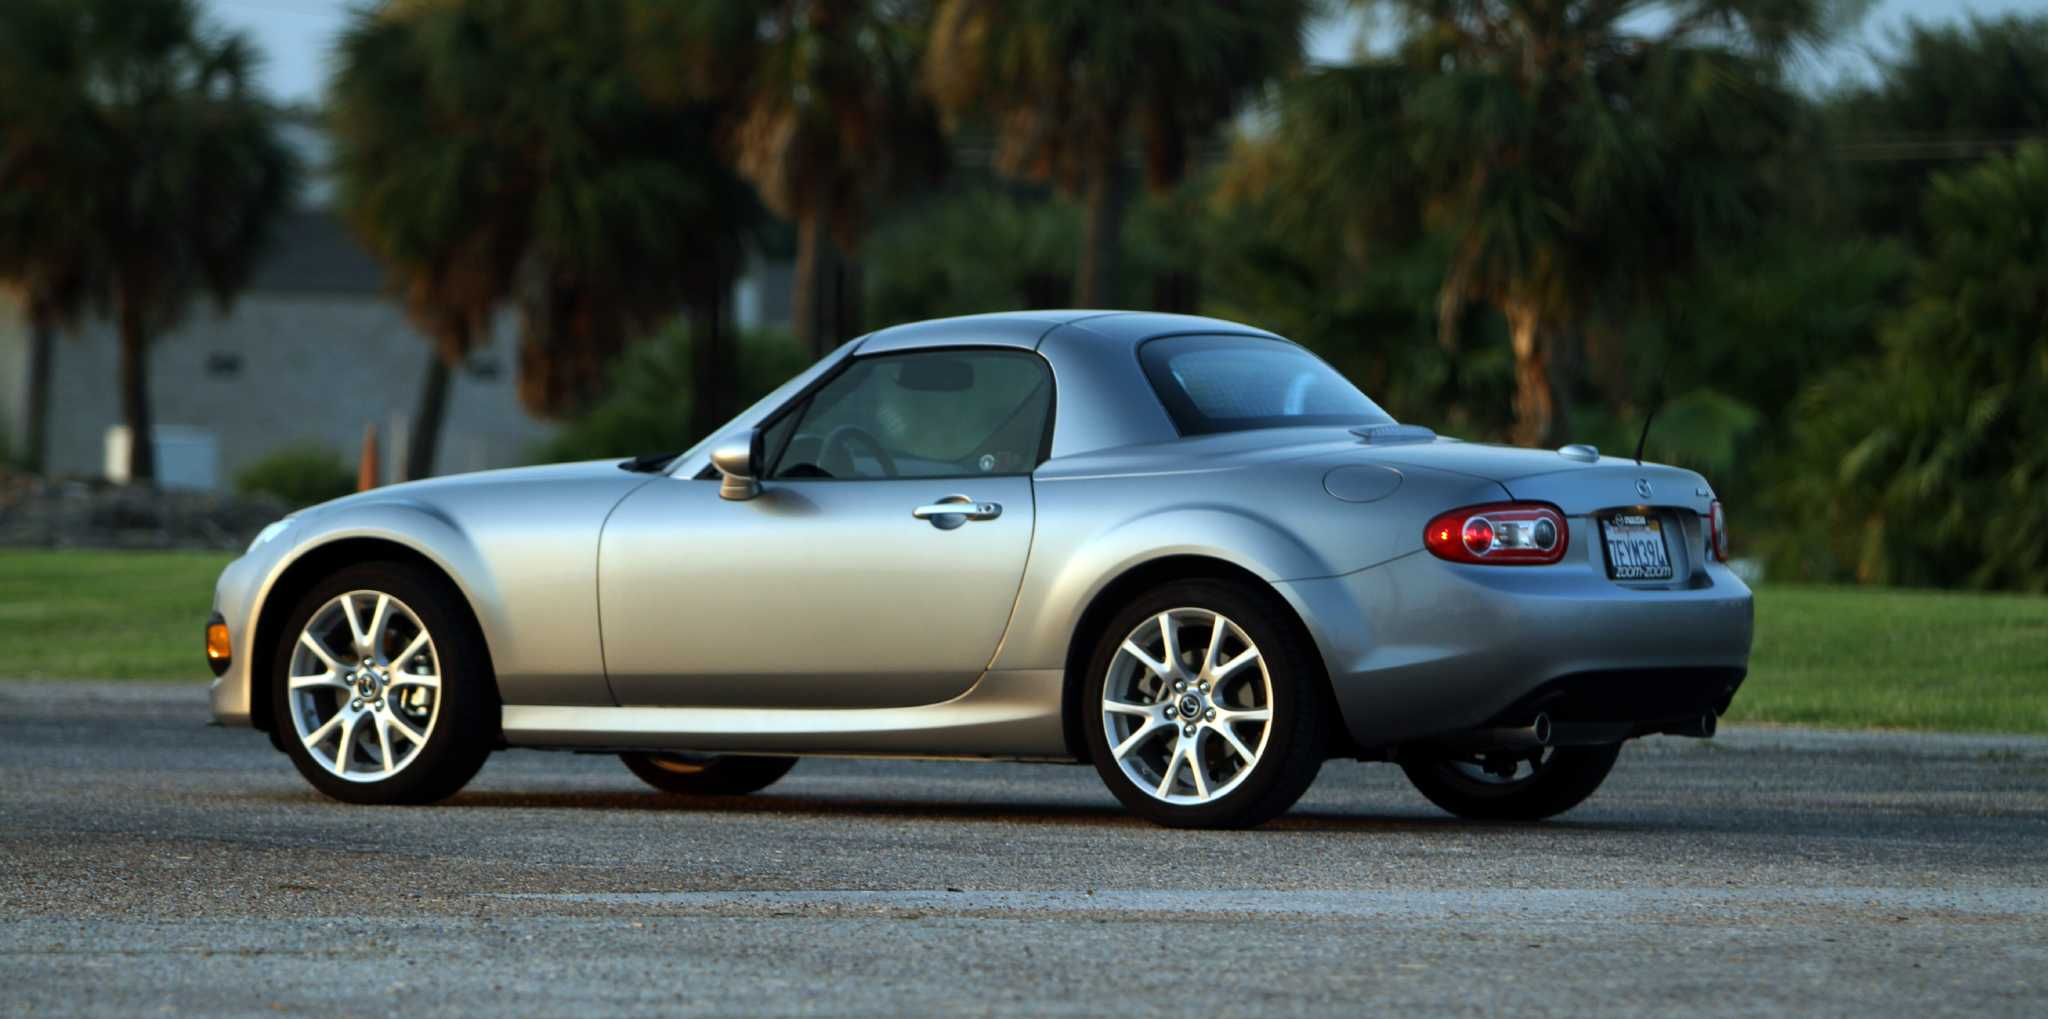 s now hardtop mx unveiled let the suspense mazda stop rallybacker show nd pictures for and of miata blog